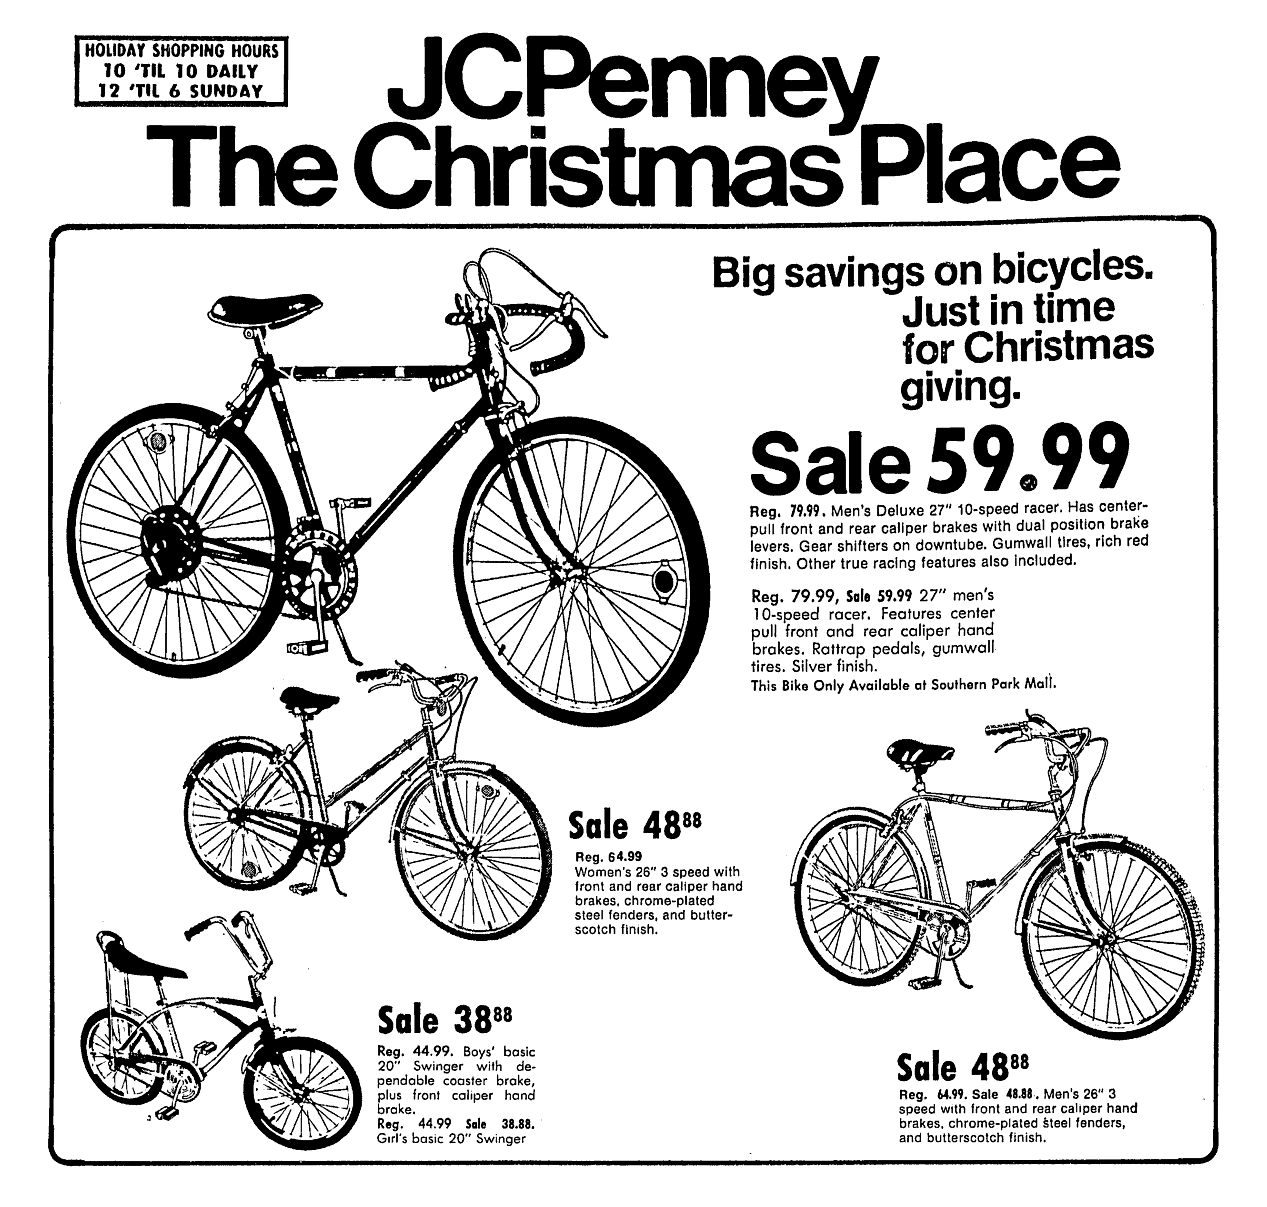 Jcpenney Bicycles November 1974 Christmas Place Christmas Place Bicycle Jcpenney